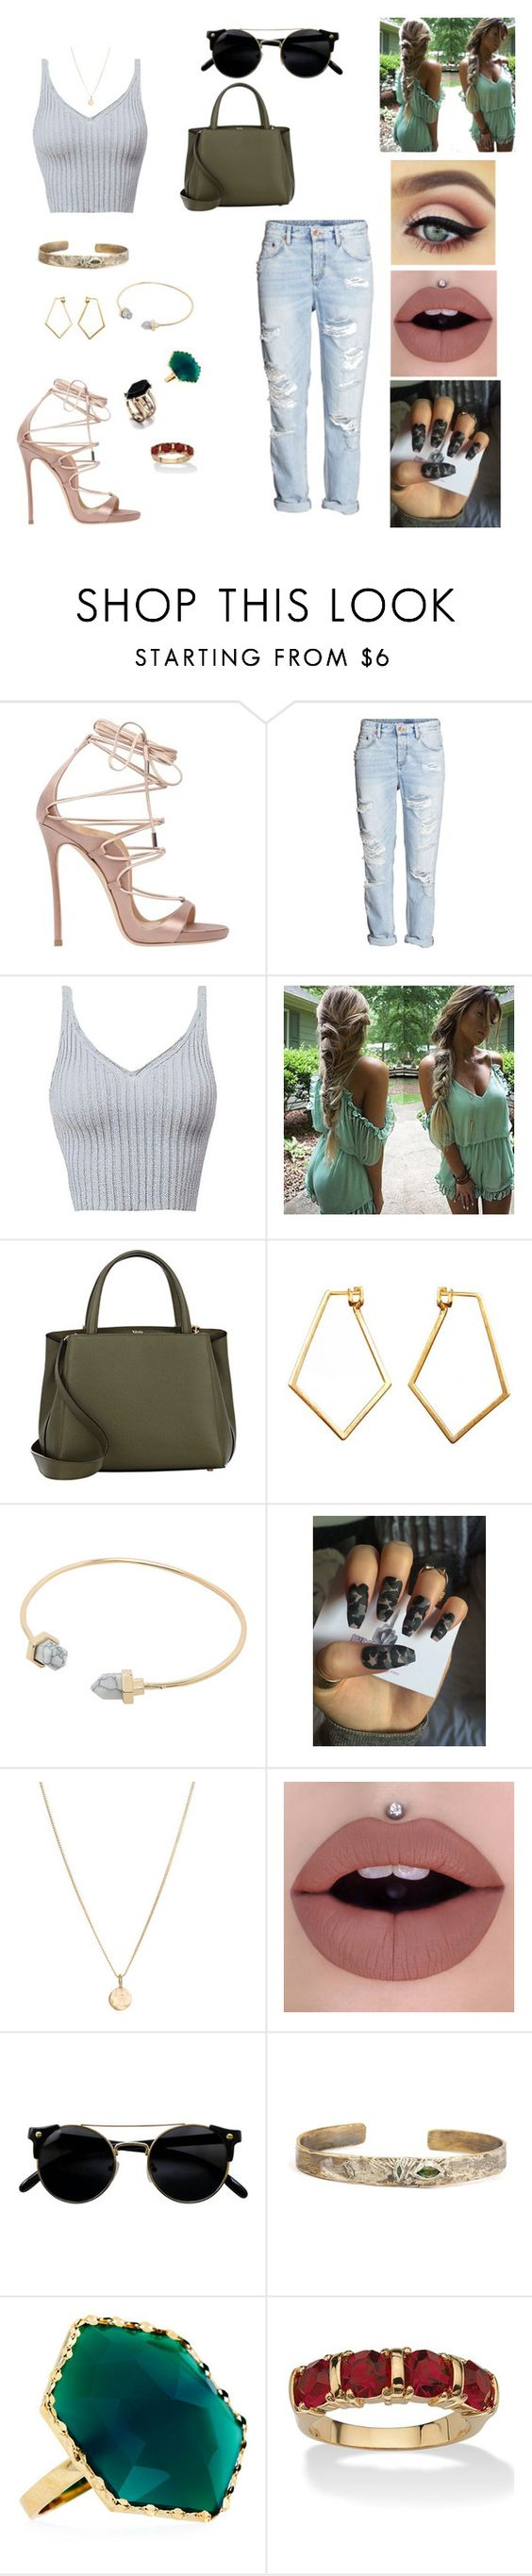 """""""&"""" by raquelitaa-torres ❤ liked on Polyvore featuring Dsquared2, Valextra, Dutch Basics, Laura Lee, Lana and Palm Beach Jewelry"""